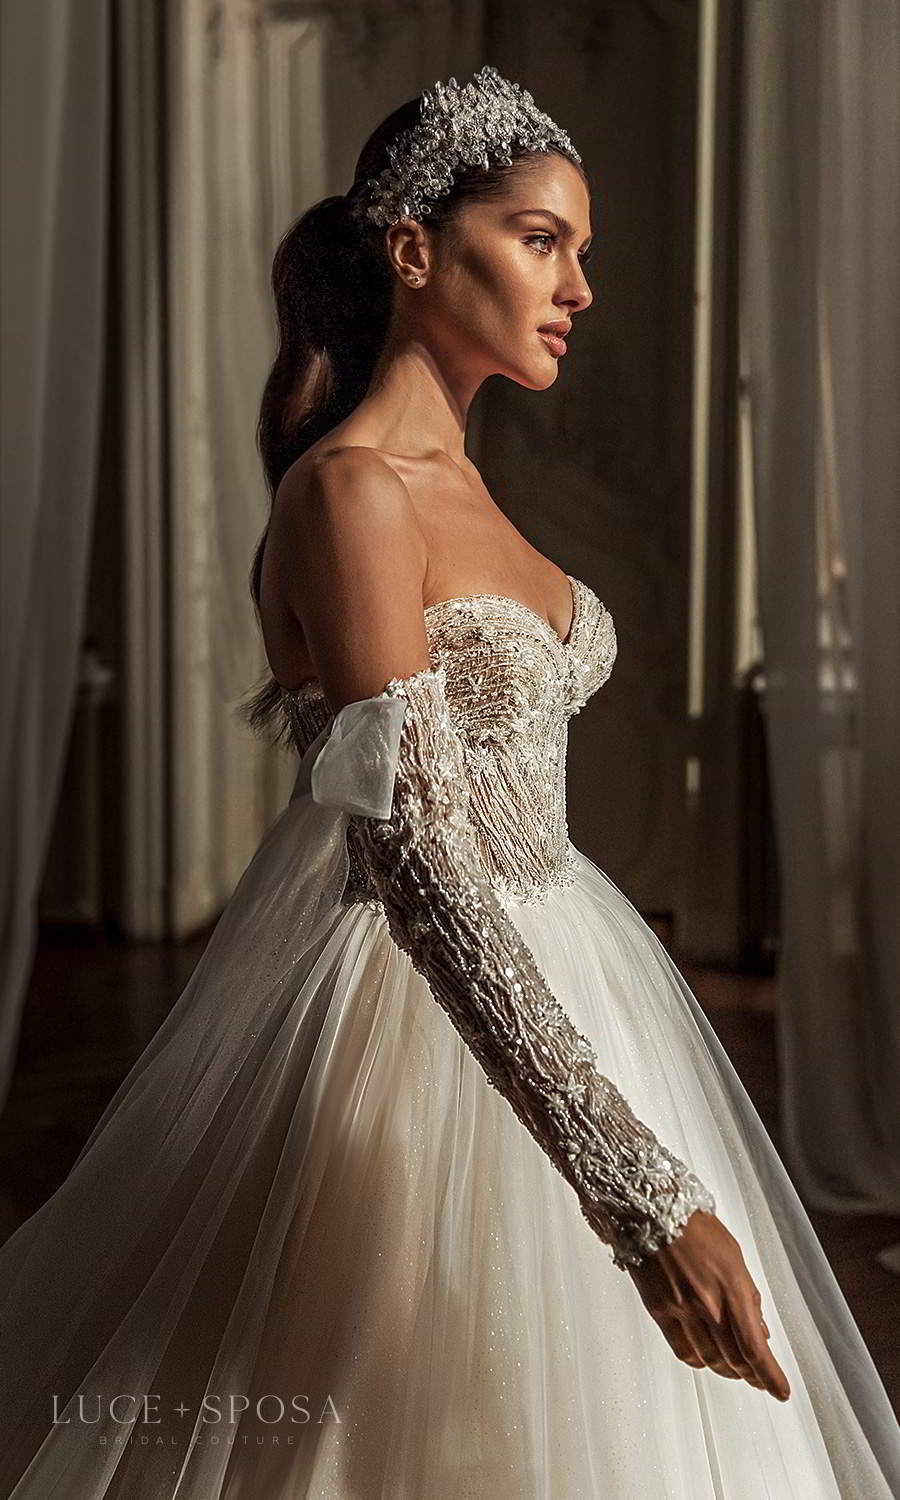 luce sposa 2021 shades of couture bridal long detached sleeves strapless sweetheart neckline heavily embellished bodice a line ball gown wedding dress chapel train (emery) zv